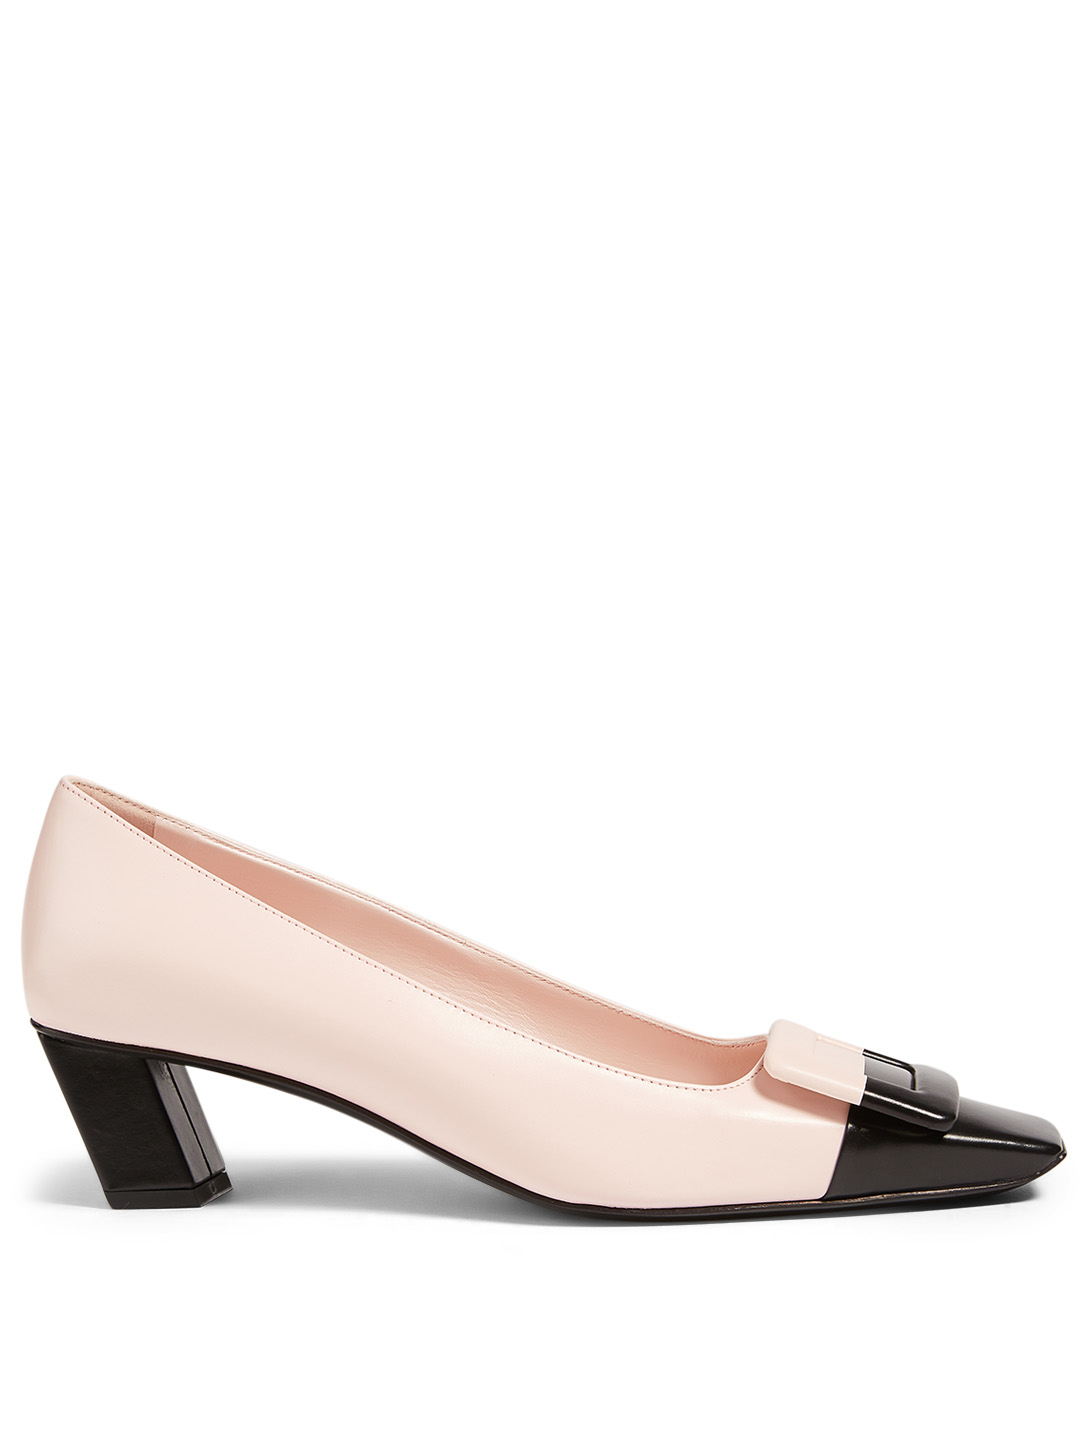 ROGER VIVIER Belle Vivier 45 Patent Leather Pumps Women's Pink